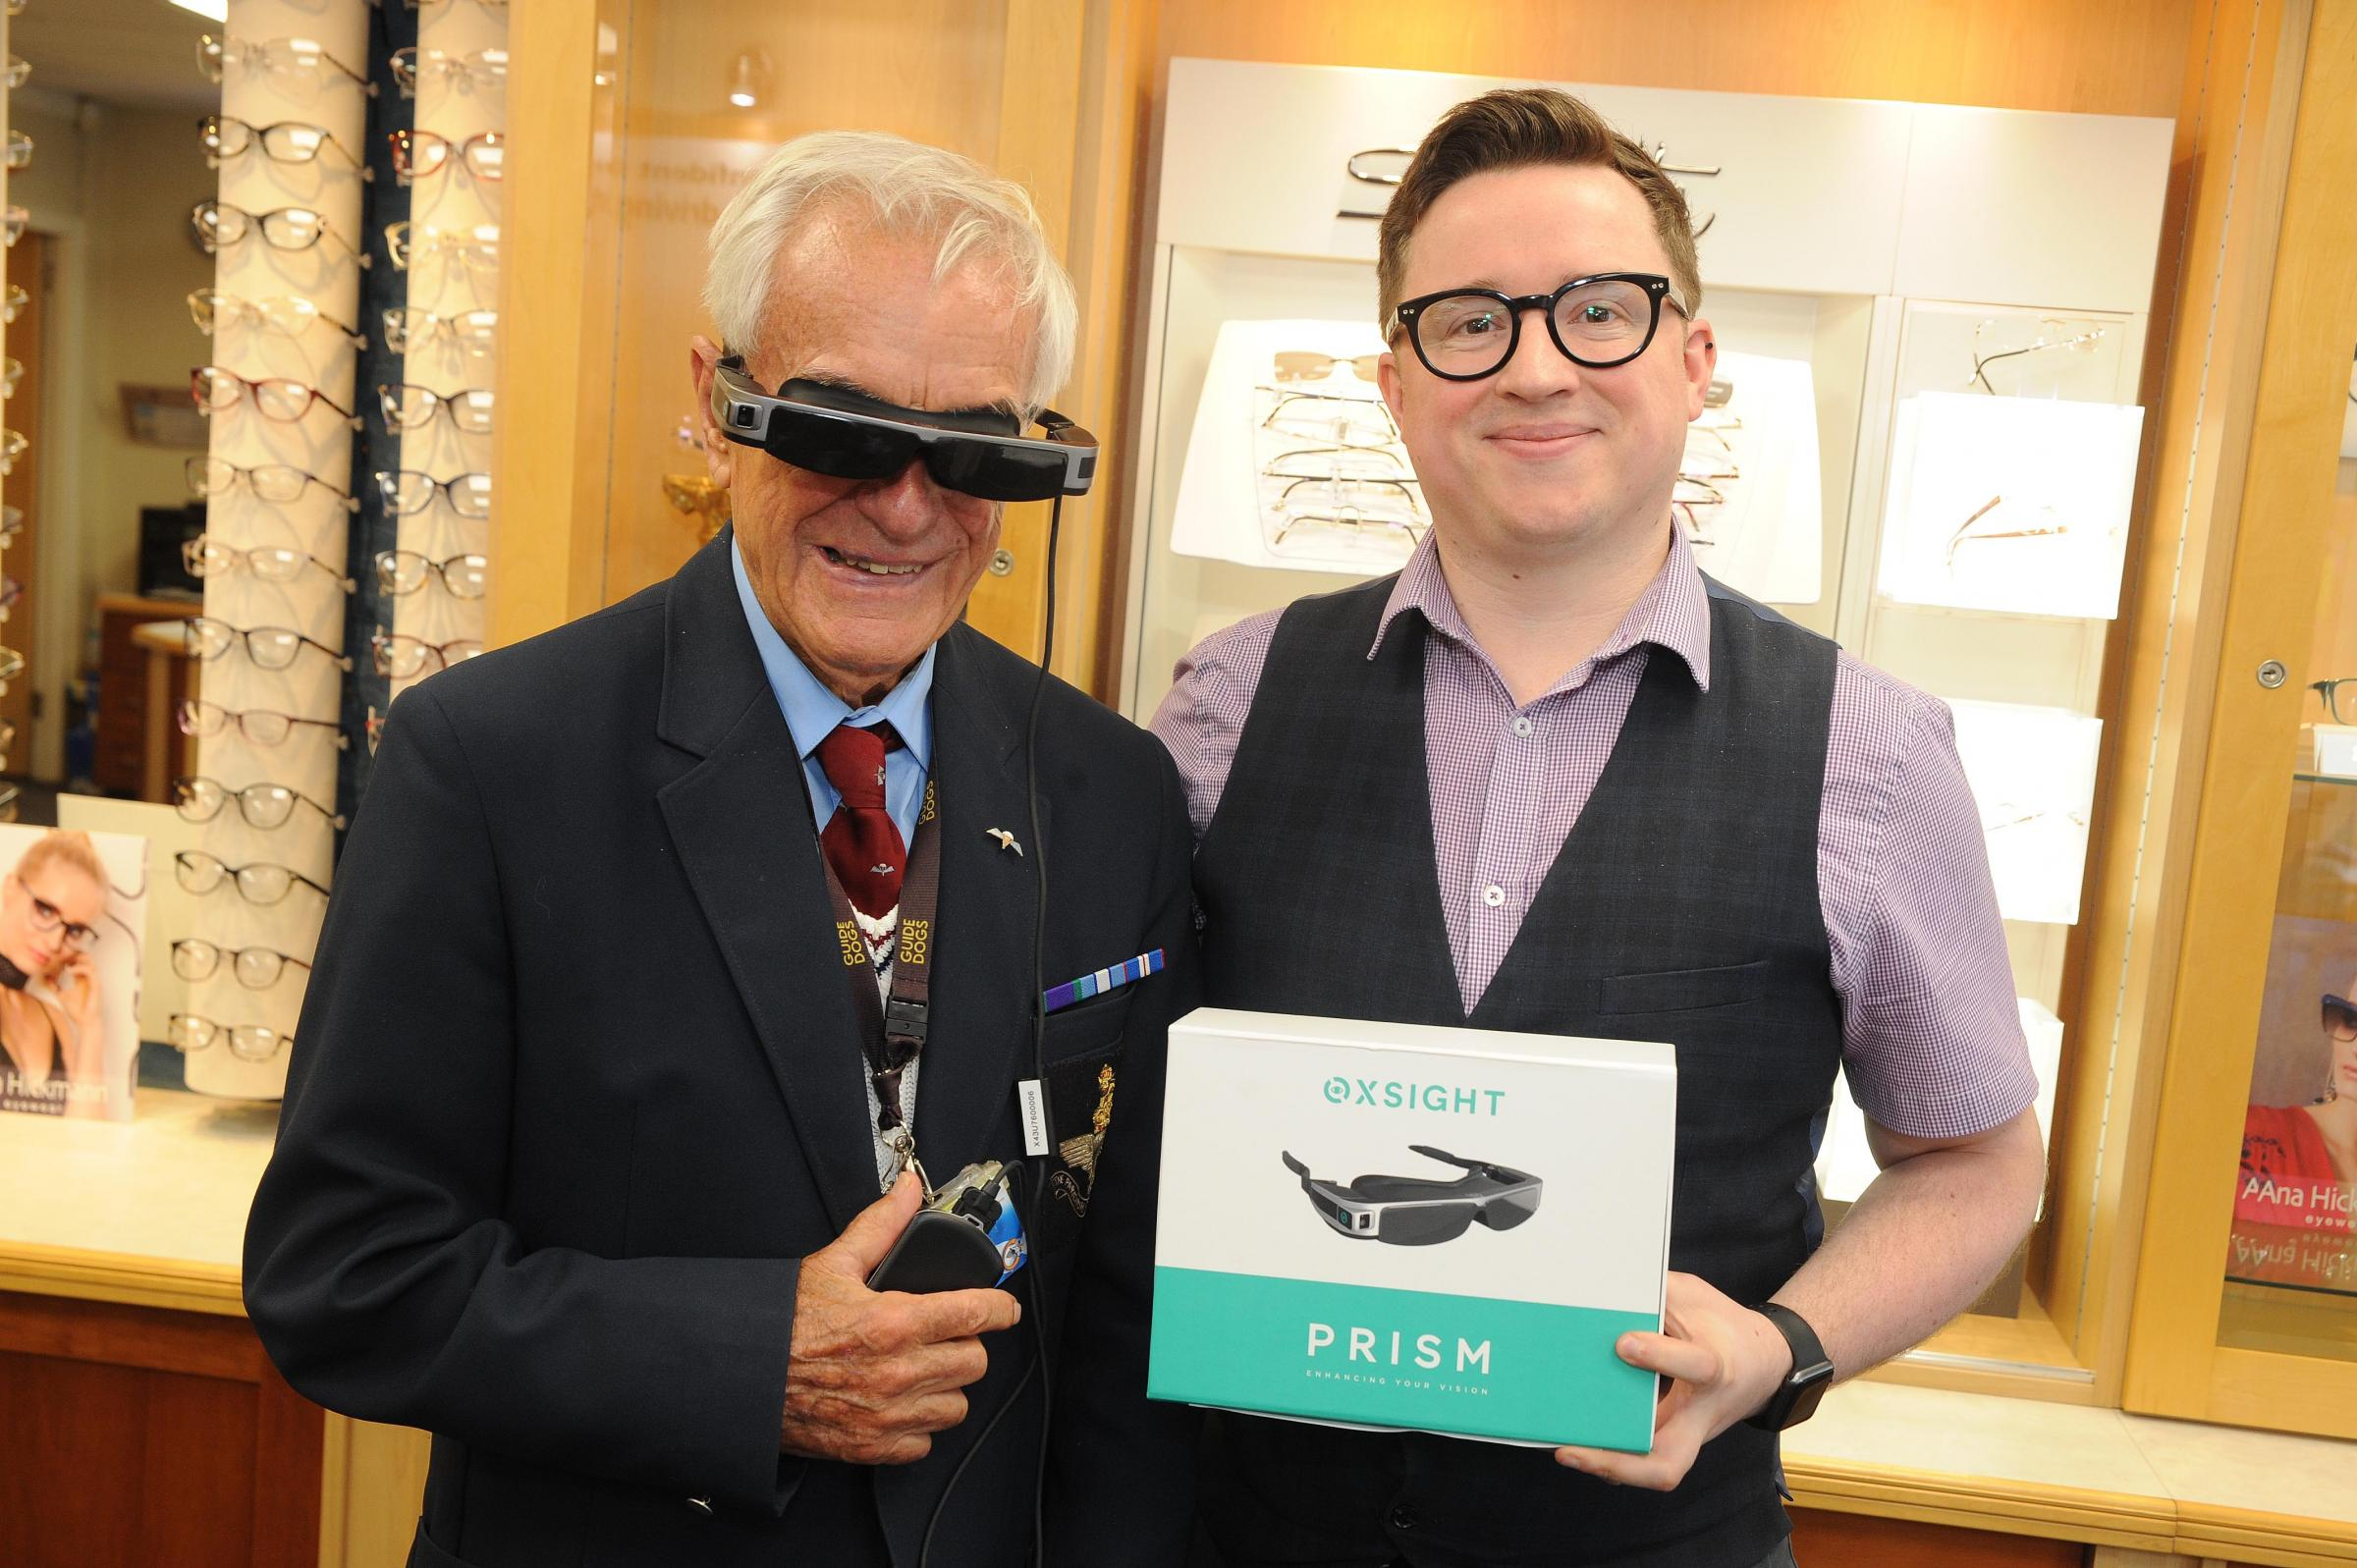 Blind Largs veteran's eyesight saved thanks to new tech